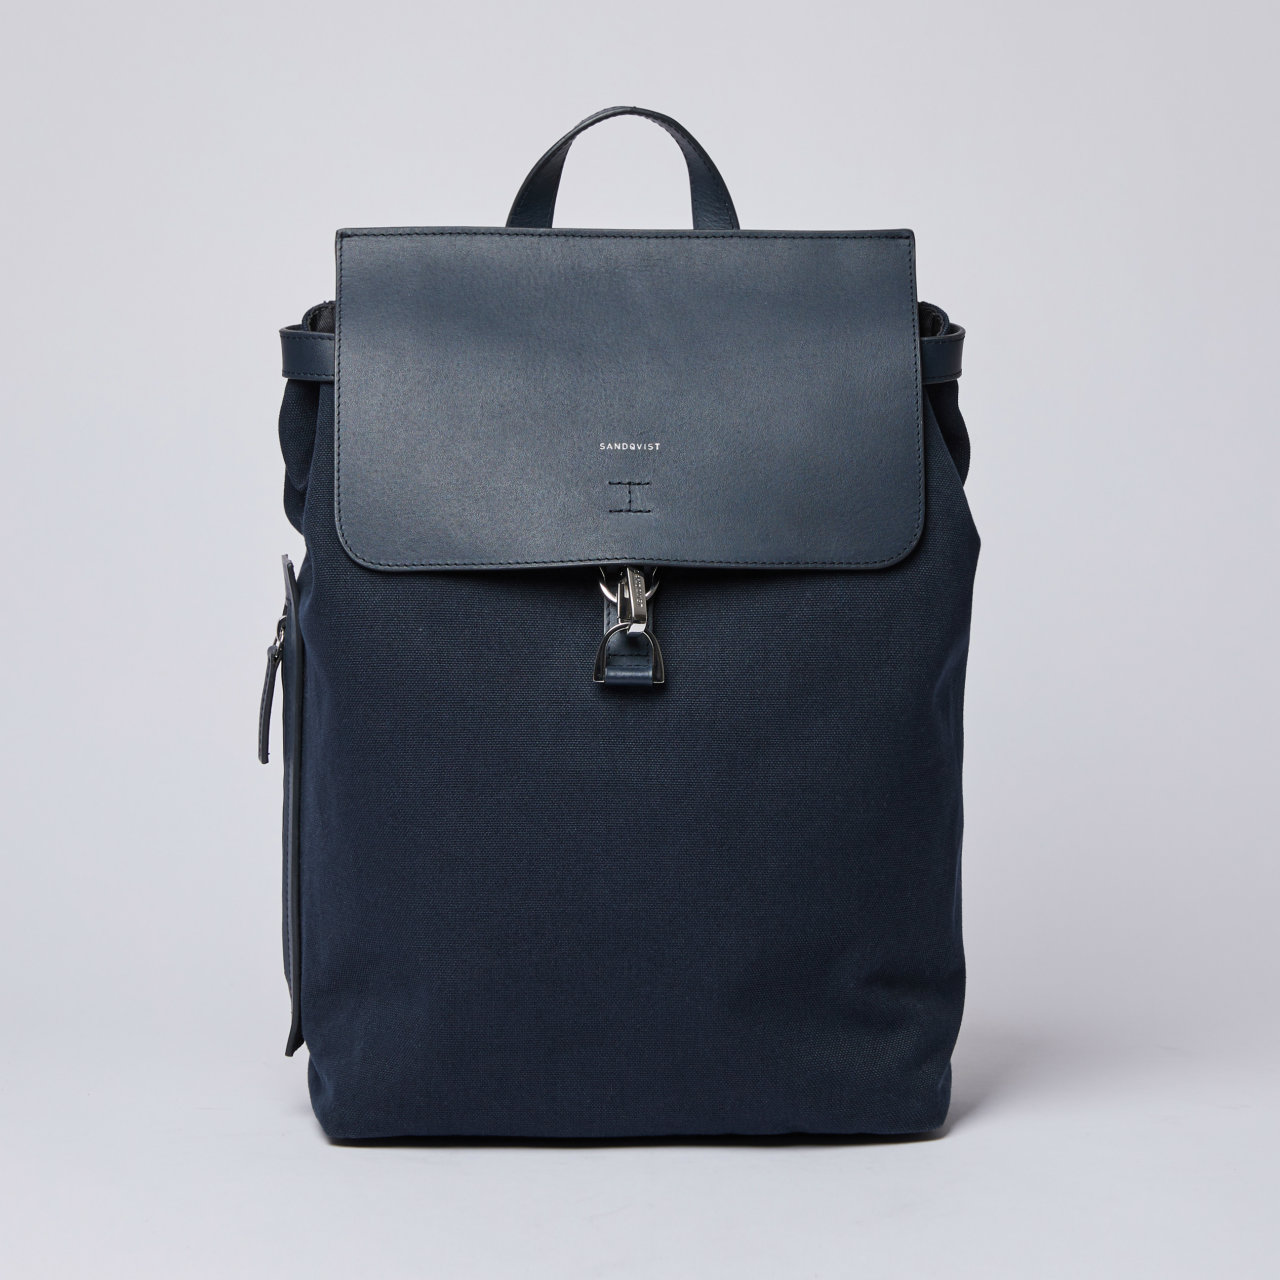 SANDQVIST ALVA W/DOG HOOK ネイビー(Navy with Navy Leather)